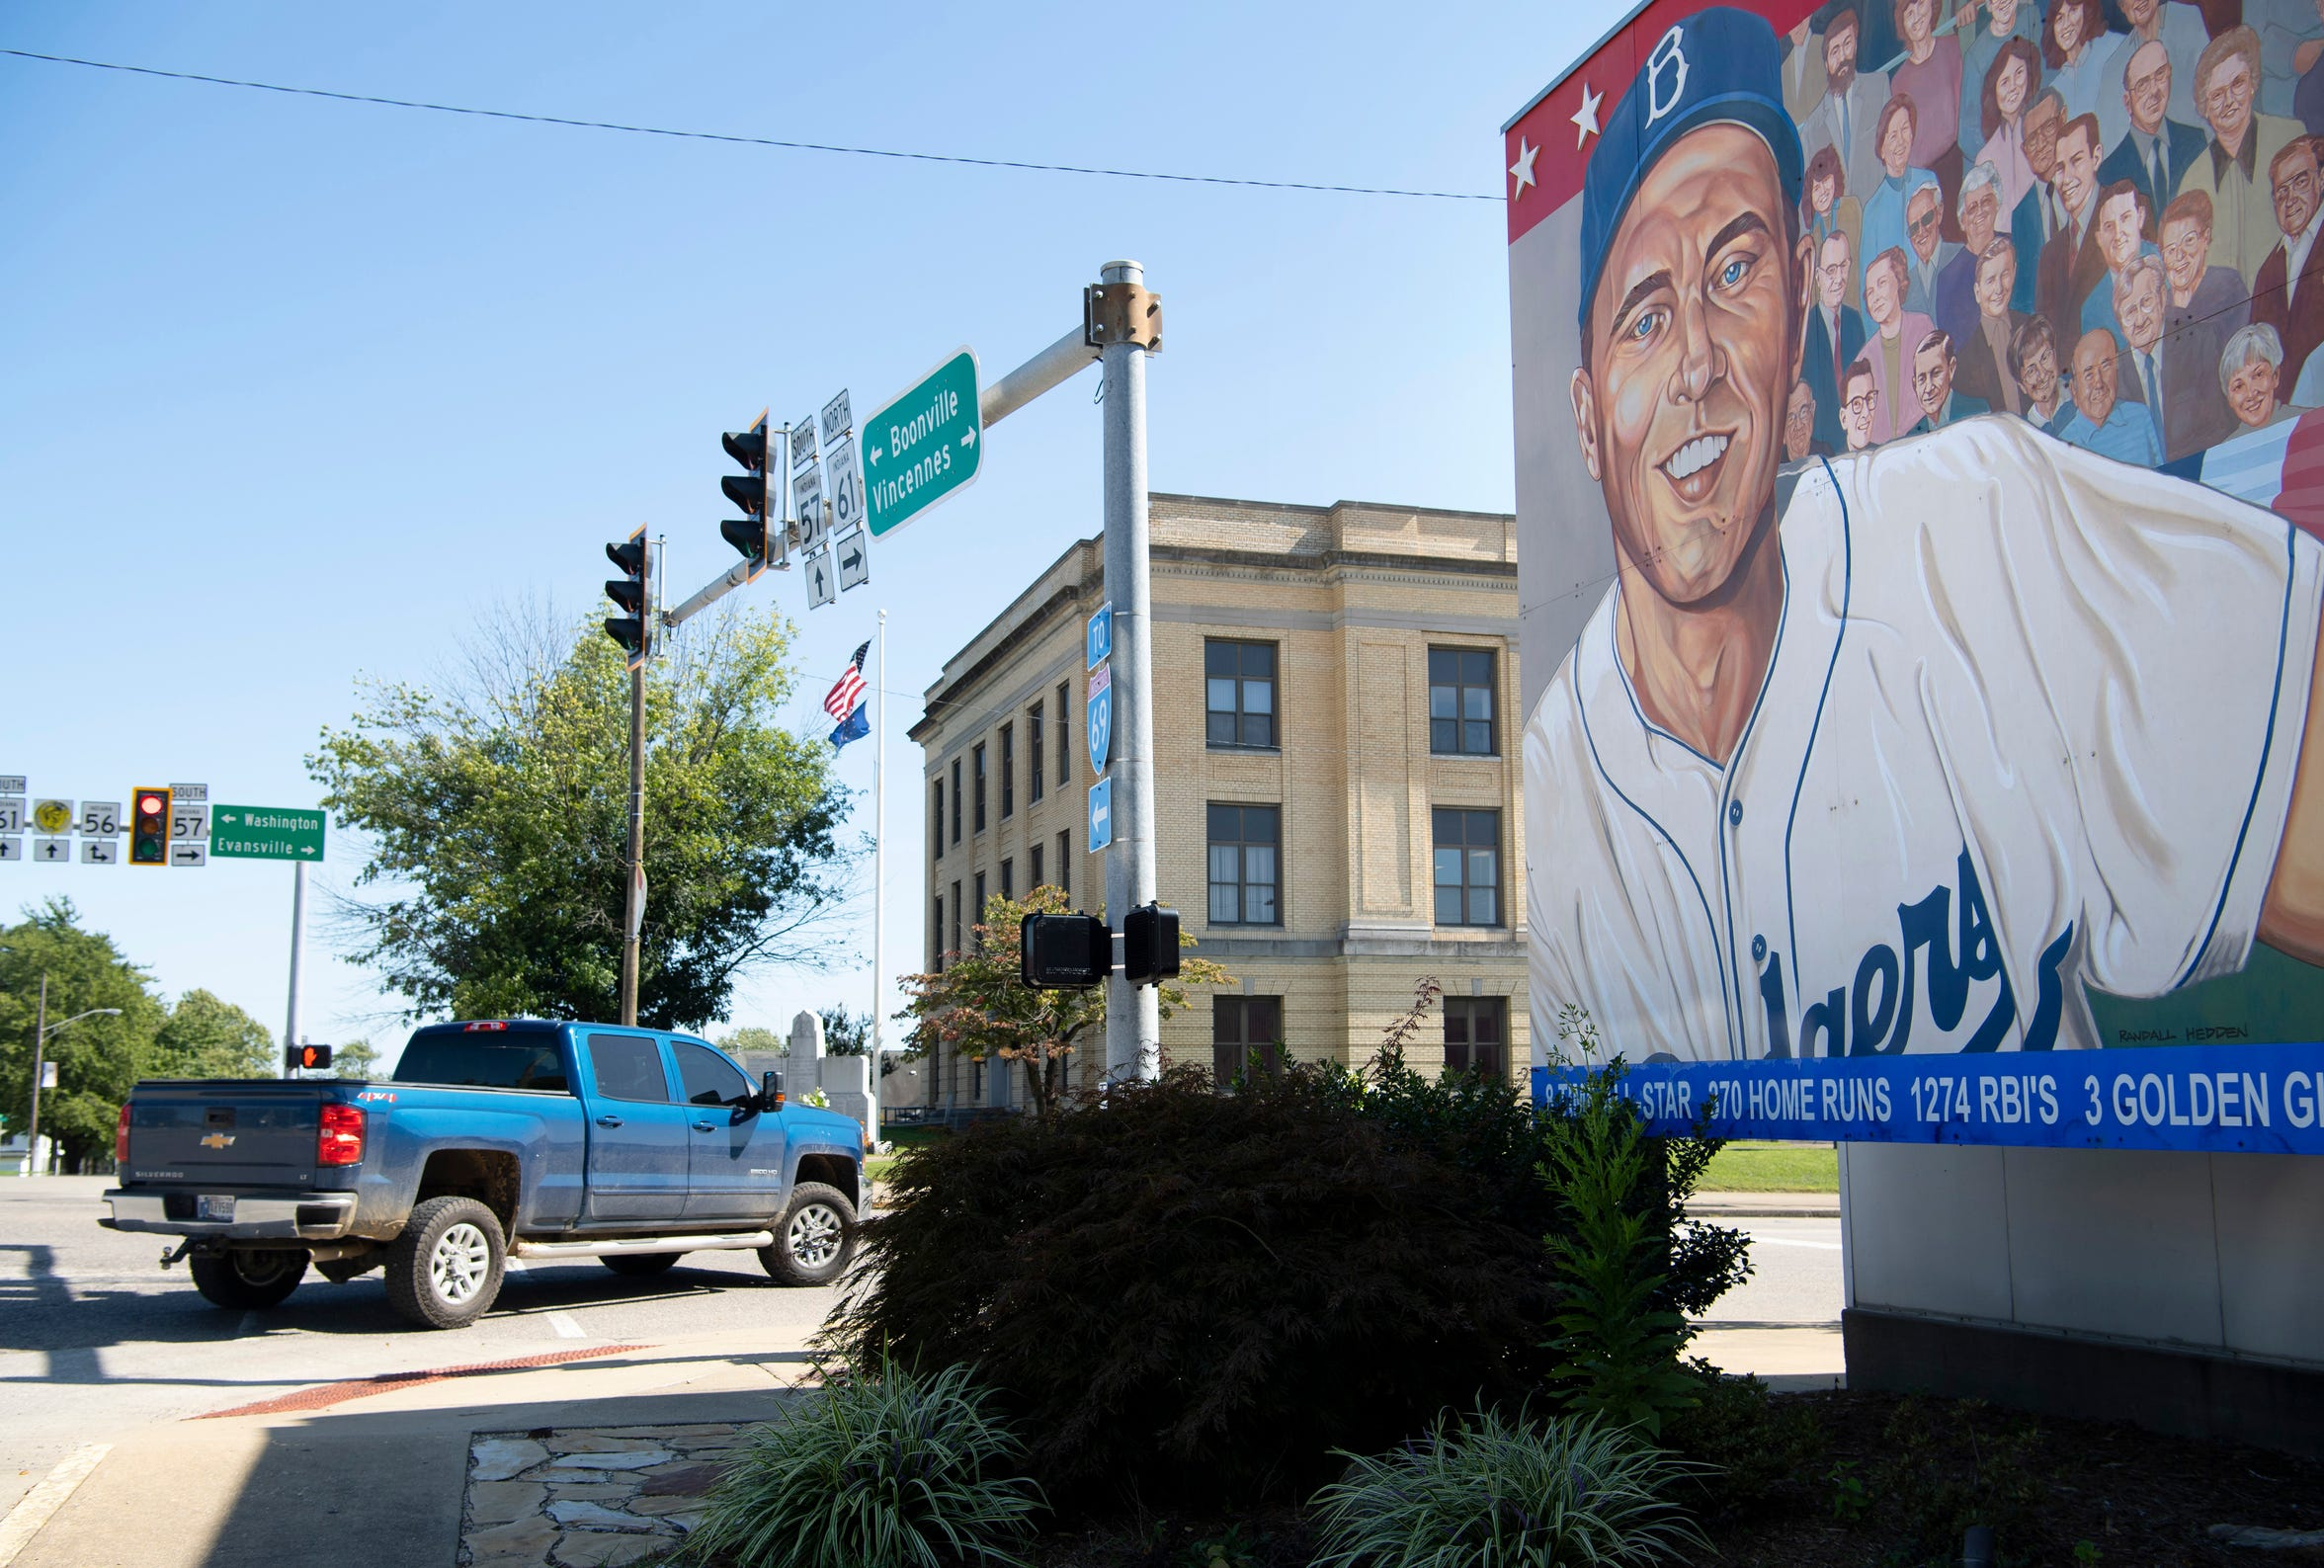 A 52' x 16' mural of Gil Hodges, painted by Randy Hedden, stands at the corner of Hwy 61 and Hwy 57 in Petersburg, Ind., Hodges' hometown. Hodges is portrayed as a player for the Brooklyn Dodgers (part of two World Series winning Dodgers teams – 1955 in Brooklyn and 1959 in Los Angeles) and manager for the New York Mets (captained the Miracle Mets to their first-ever World Series title in 1969).